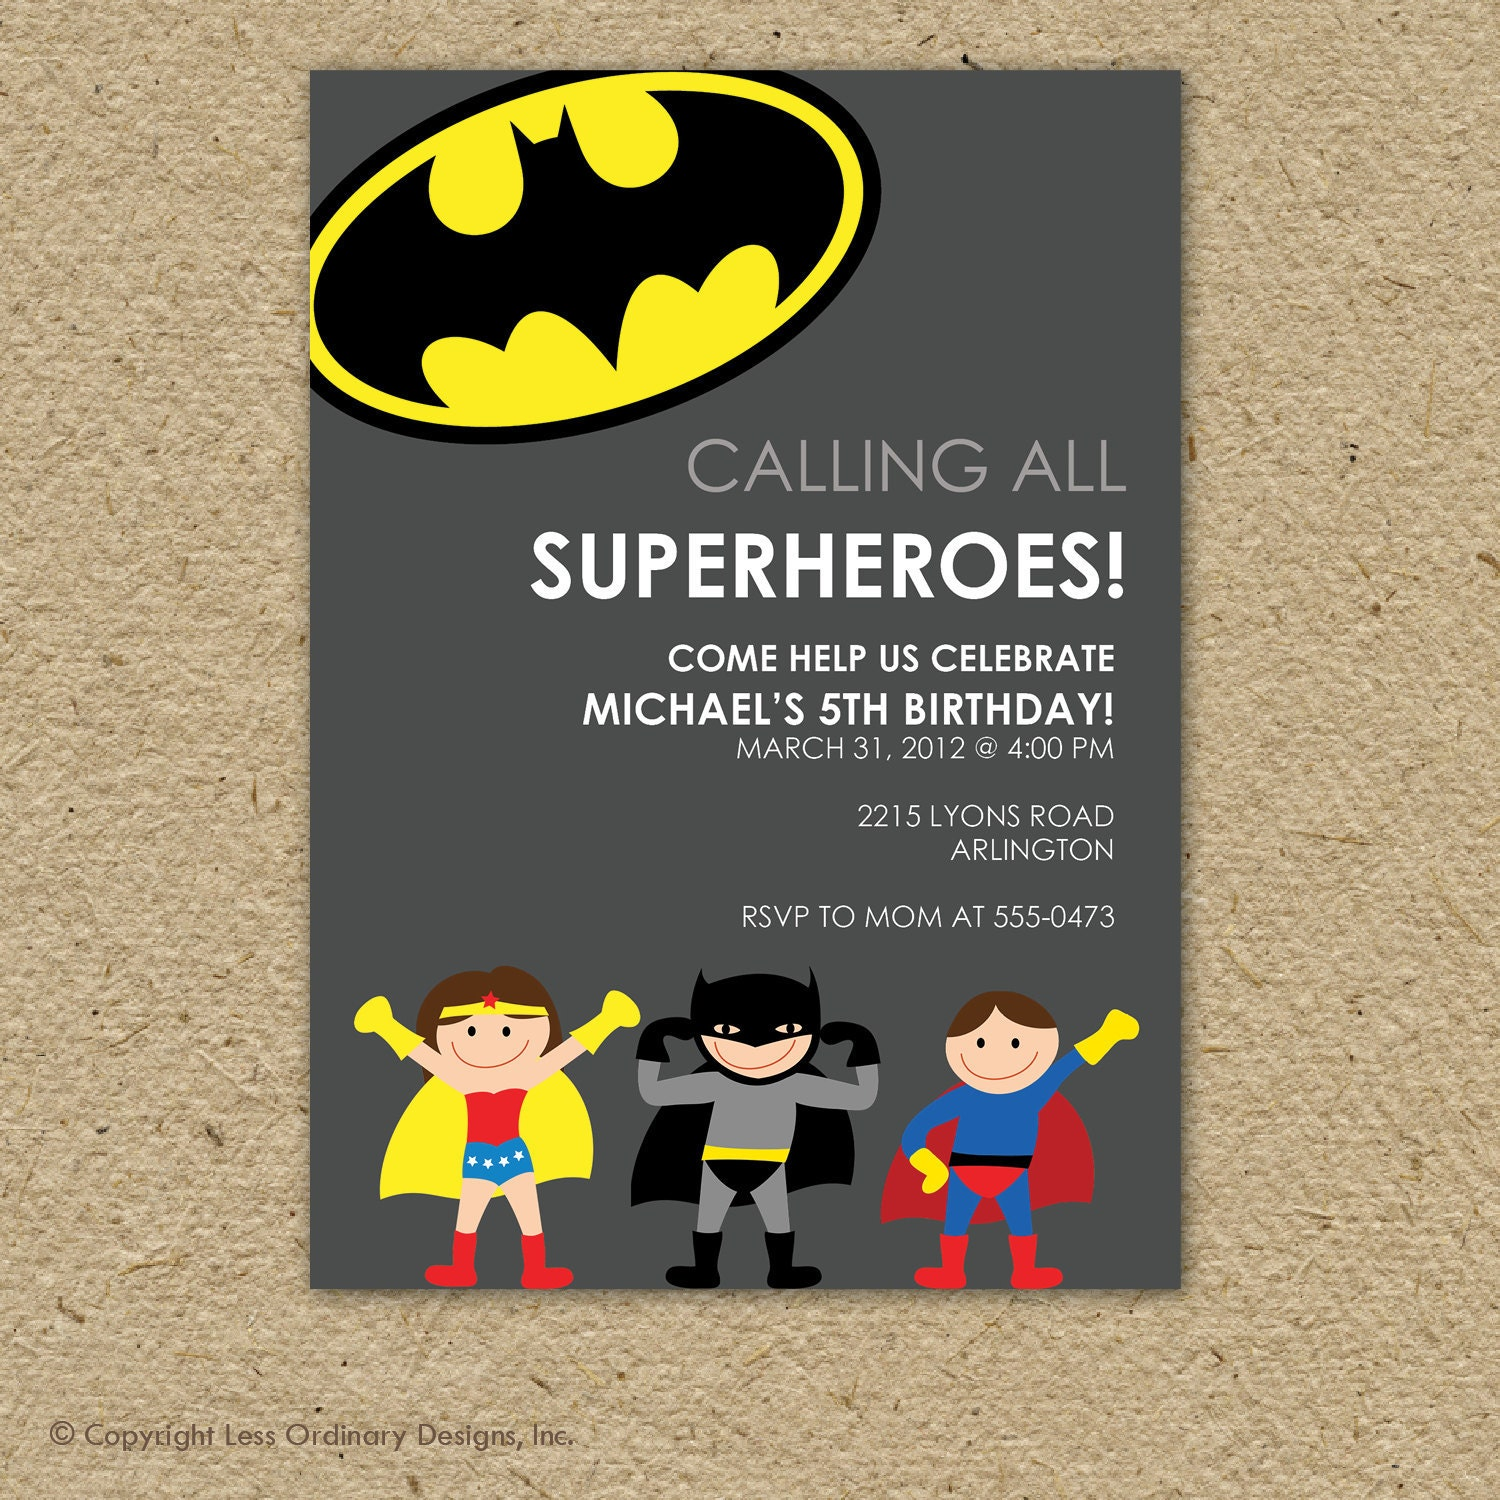 Superman Baby Shower Invitations is luxury invitation example